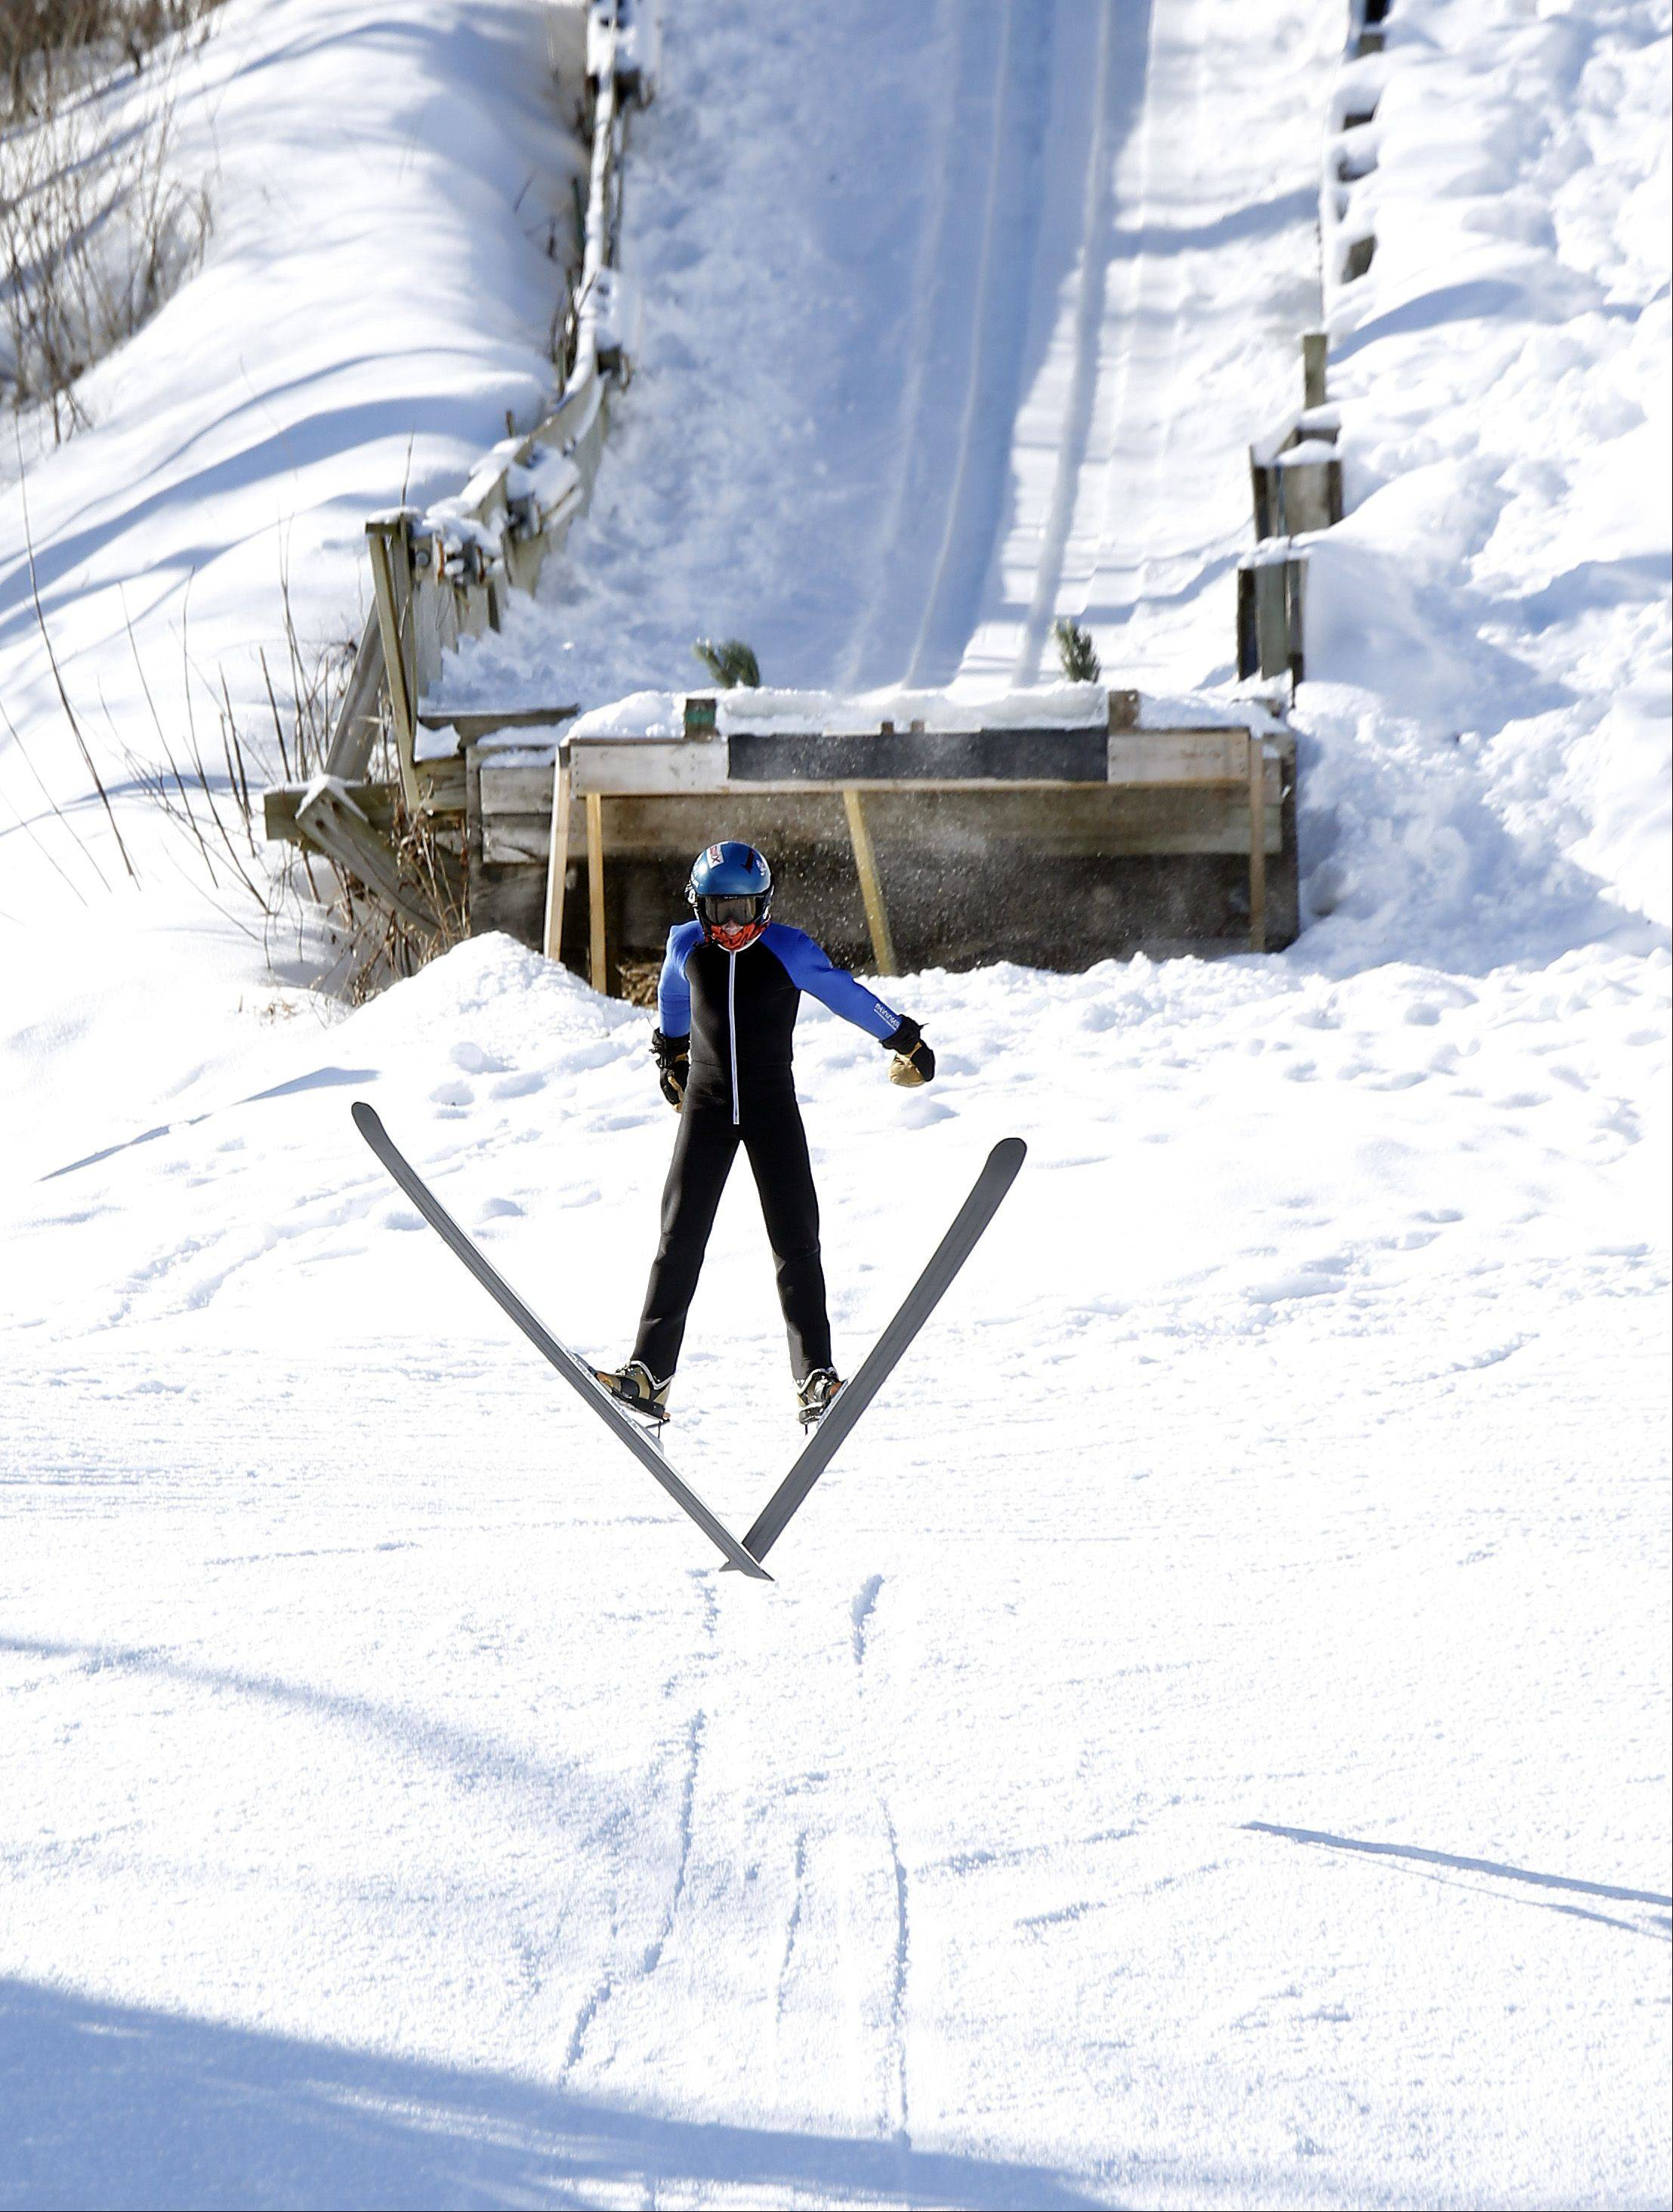 Woody Waugh, 12, of Cloquet, Minn., launches himself from the 40-meter ramp during warm-ups at the 109th Norge Ski Jump Tournament Saturday in Fox River Grove. Typically, 50 to 60 competitors register for the event. However, this year saw a surge in registrations, likely due to people excited about the upcoming Winter Olympics in Sochi, Russia.